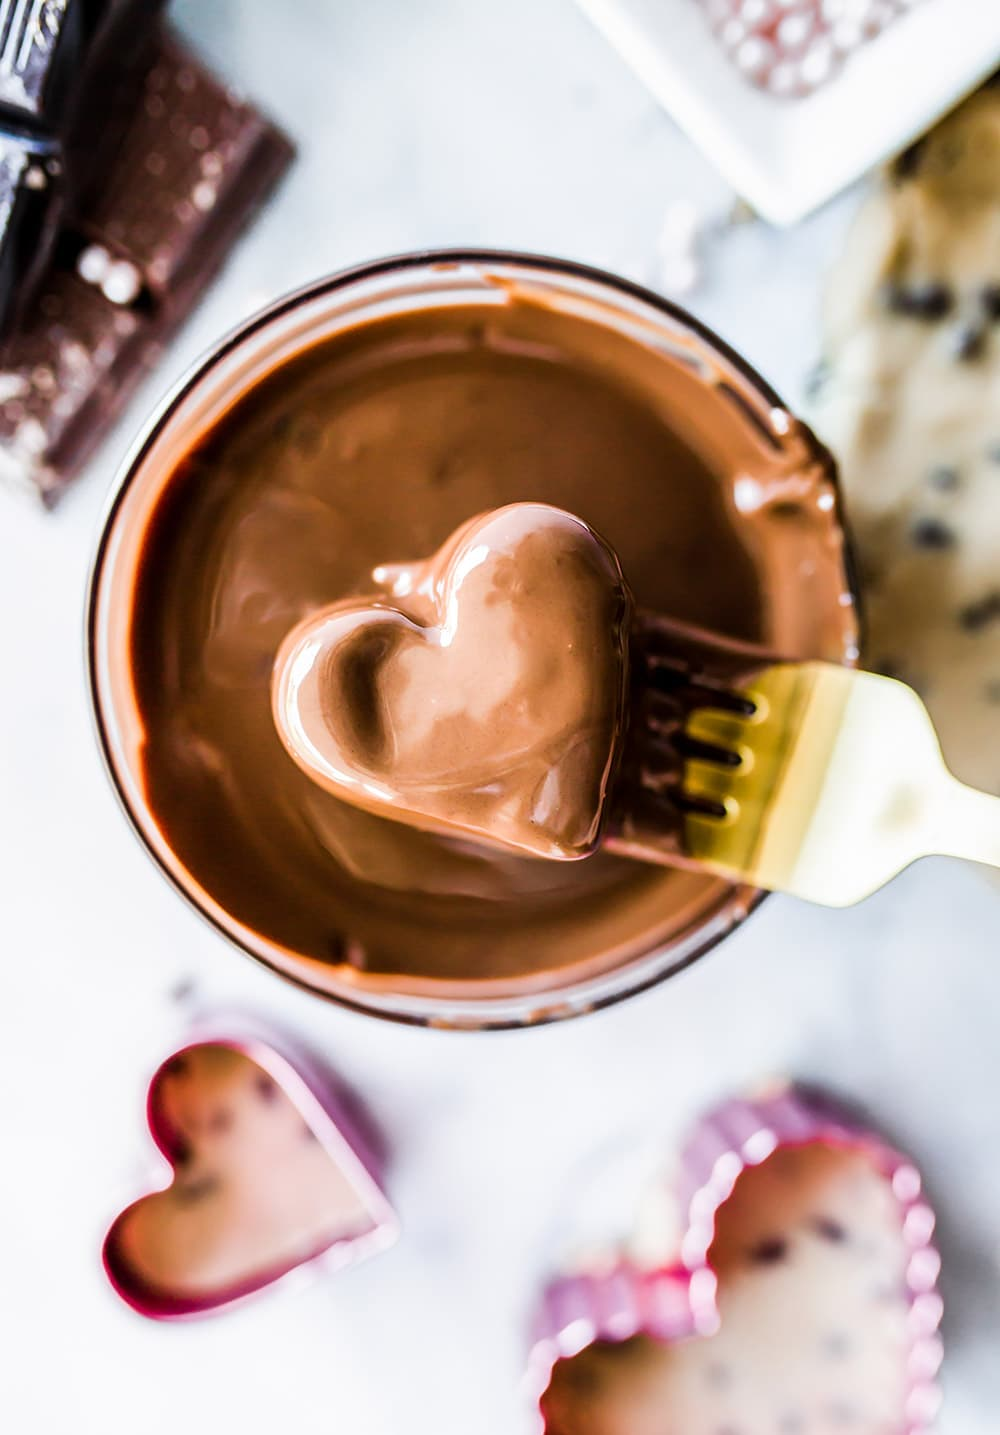 These adorable no-bake chocolate covered Cookie Dough Hearts are the perfect homemade chocolate treat for Valentine's Day, no chocolate tempering or candy melts required!